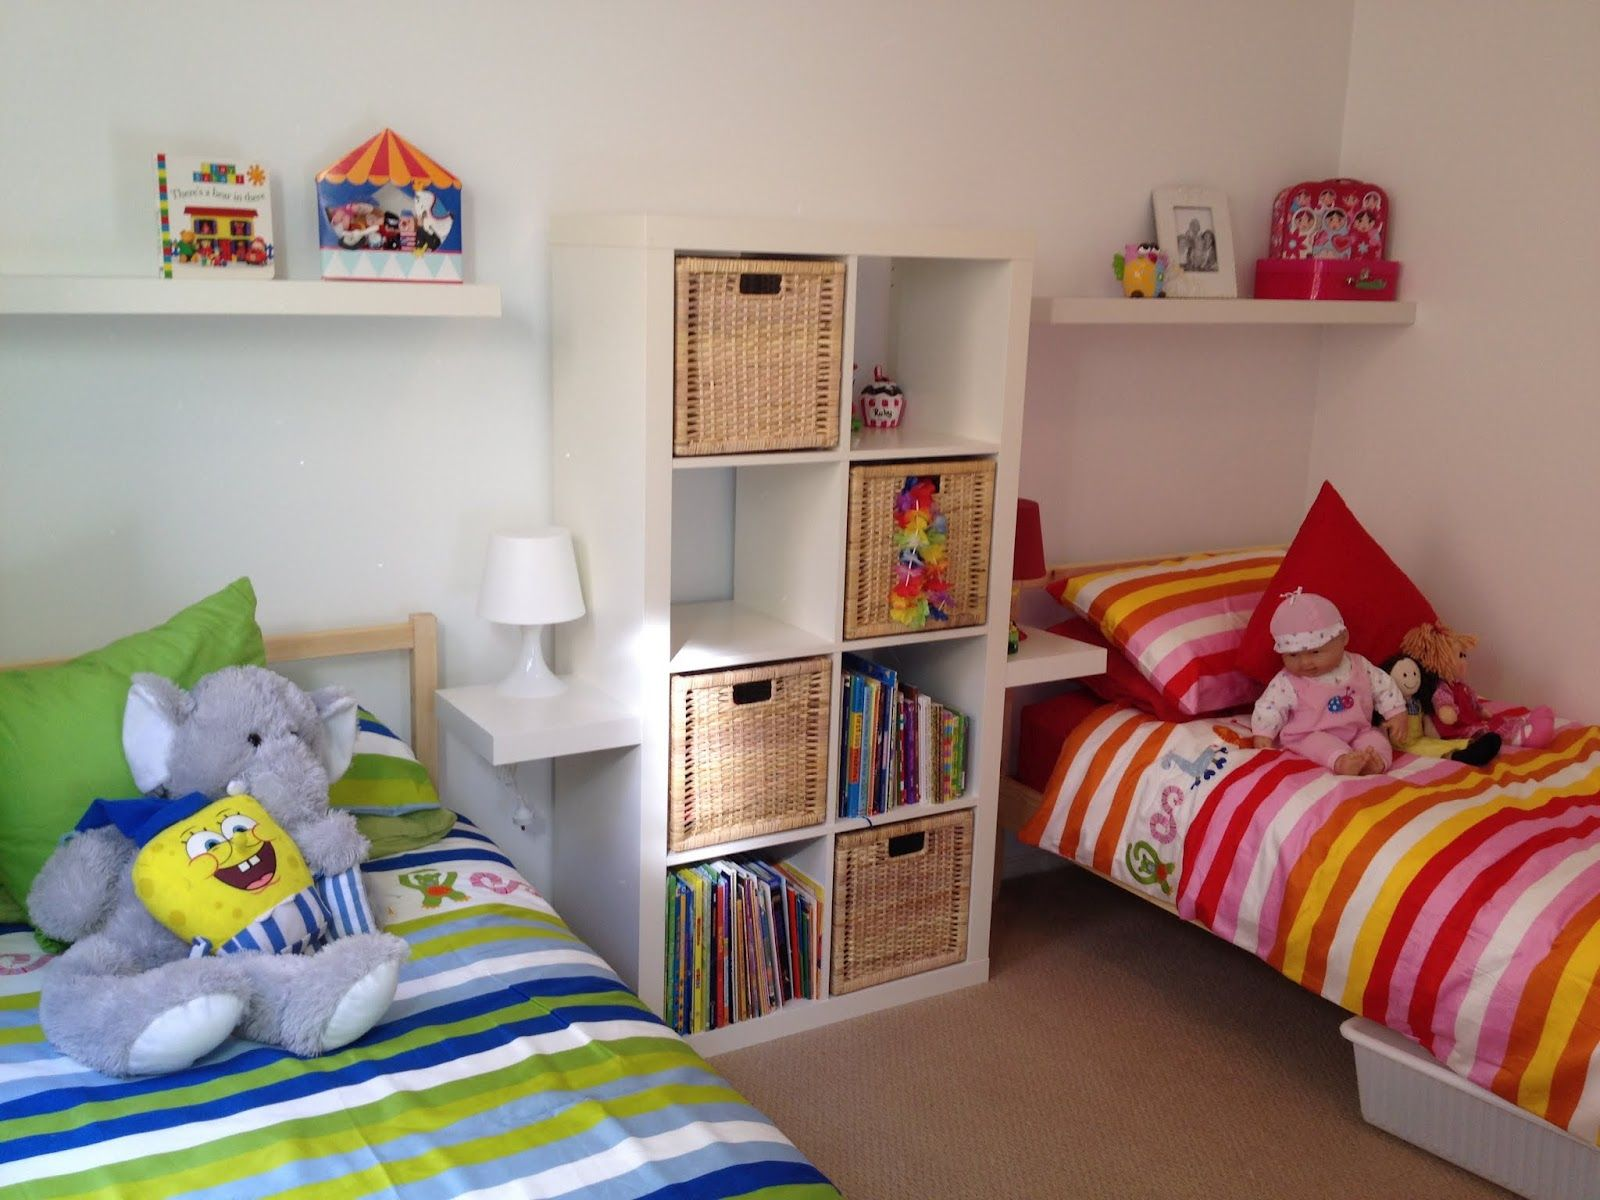 Shared boys bedroom designs - Amazing Boy And Girl Room Ideas With Dolls On The Twin Bed Combined With White Bookshelves